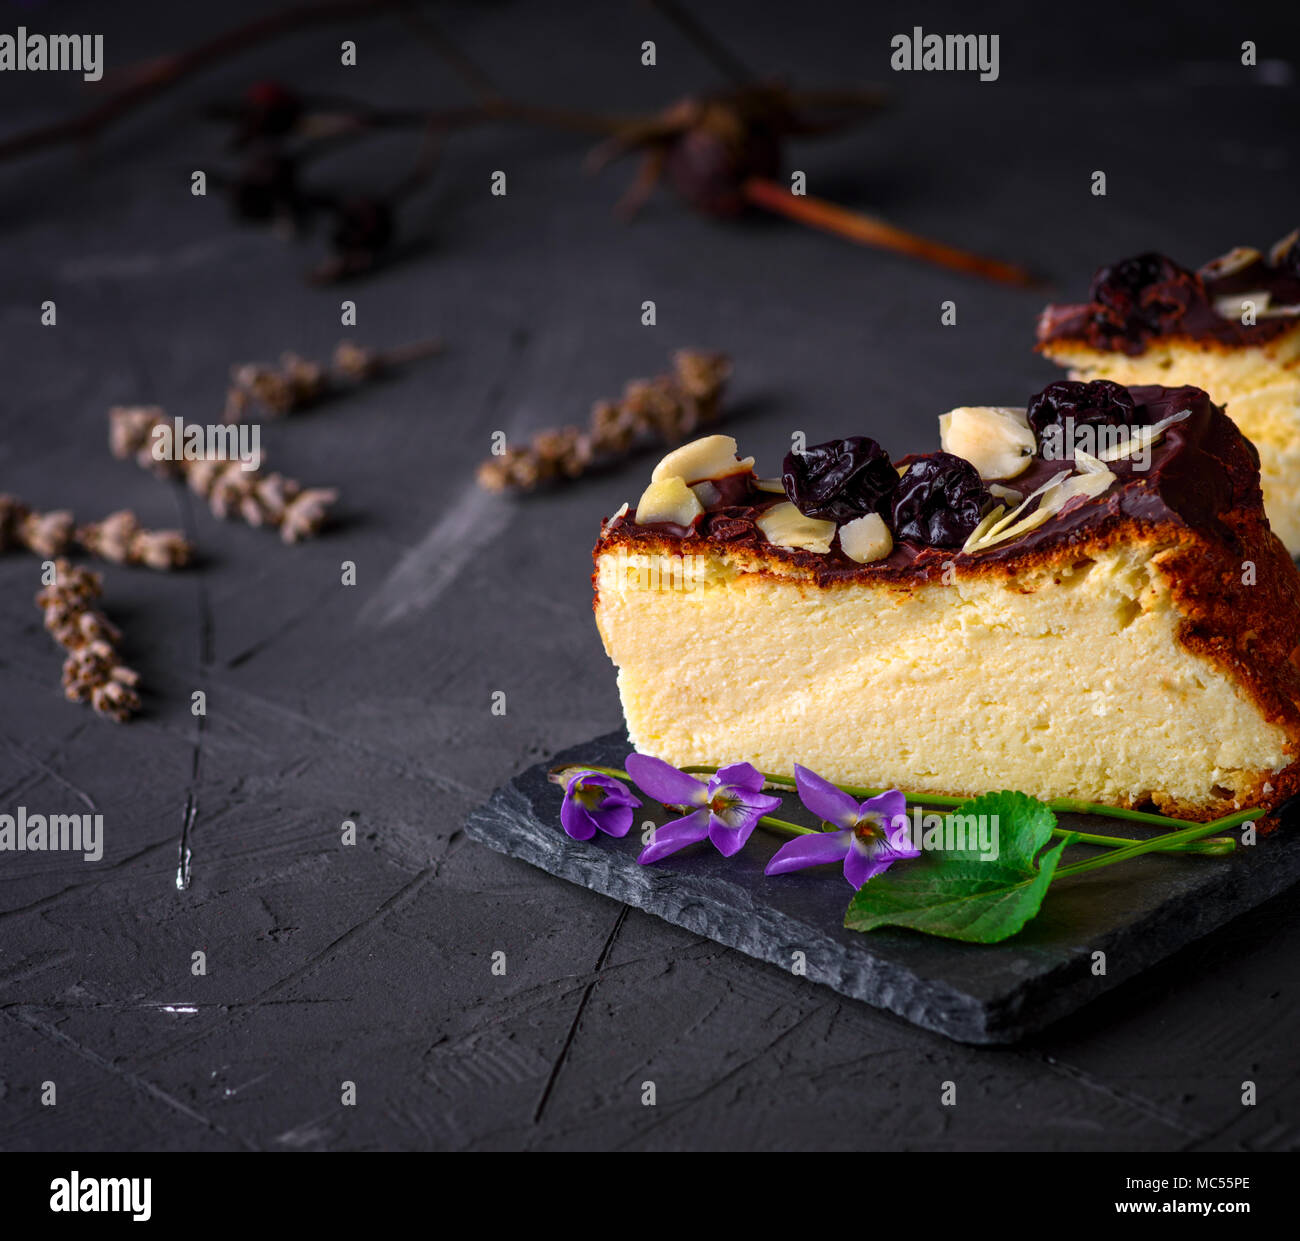 piece of cheesecake poured with chocolate and almond shavings on a black background, empty  space - Stock Image